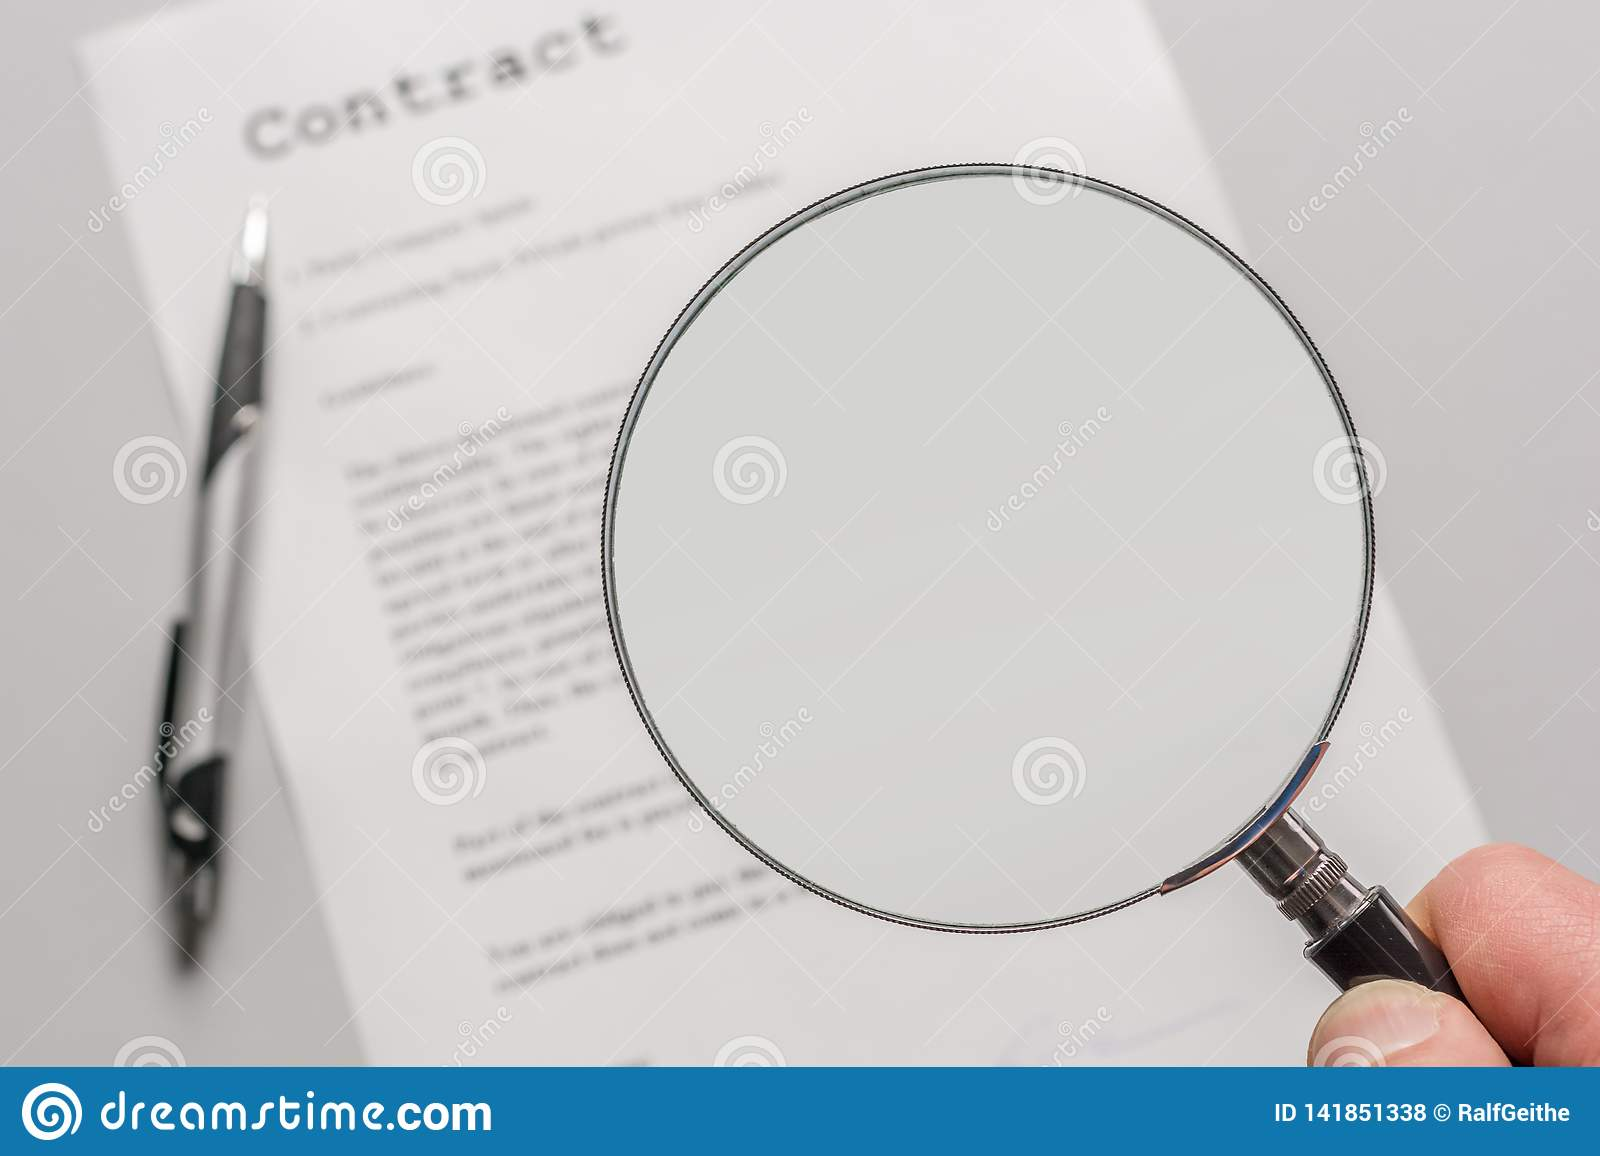 Contract with empty magnifying glass as a template for further processing